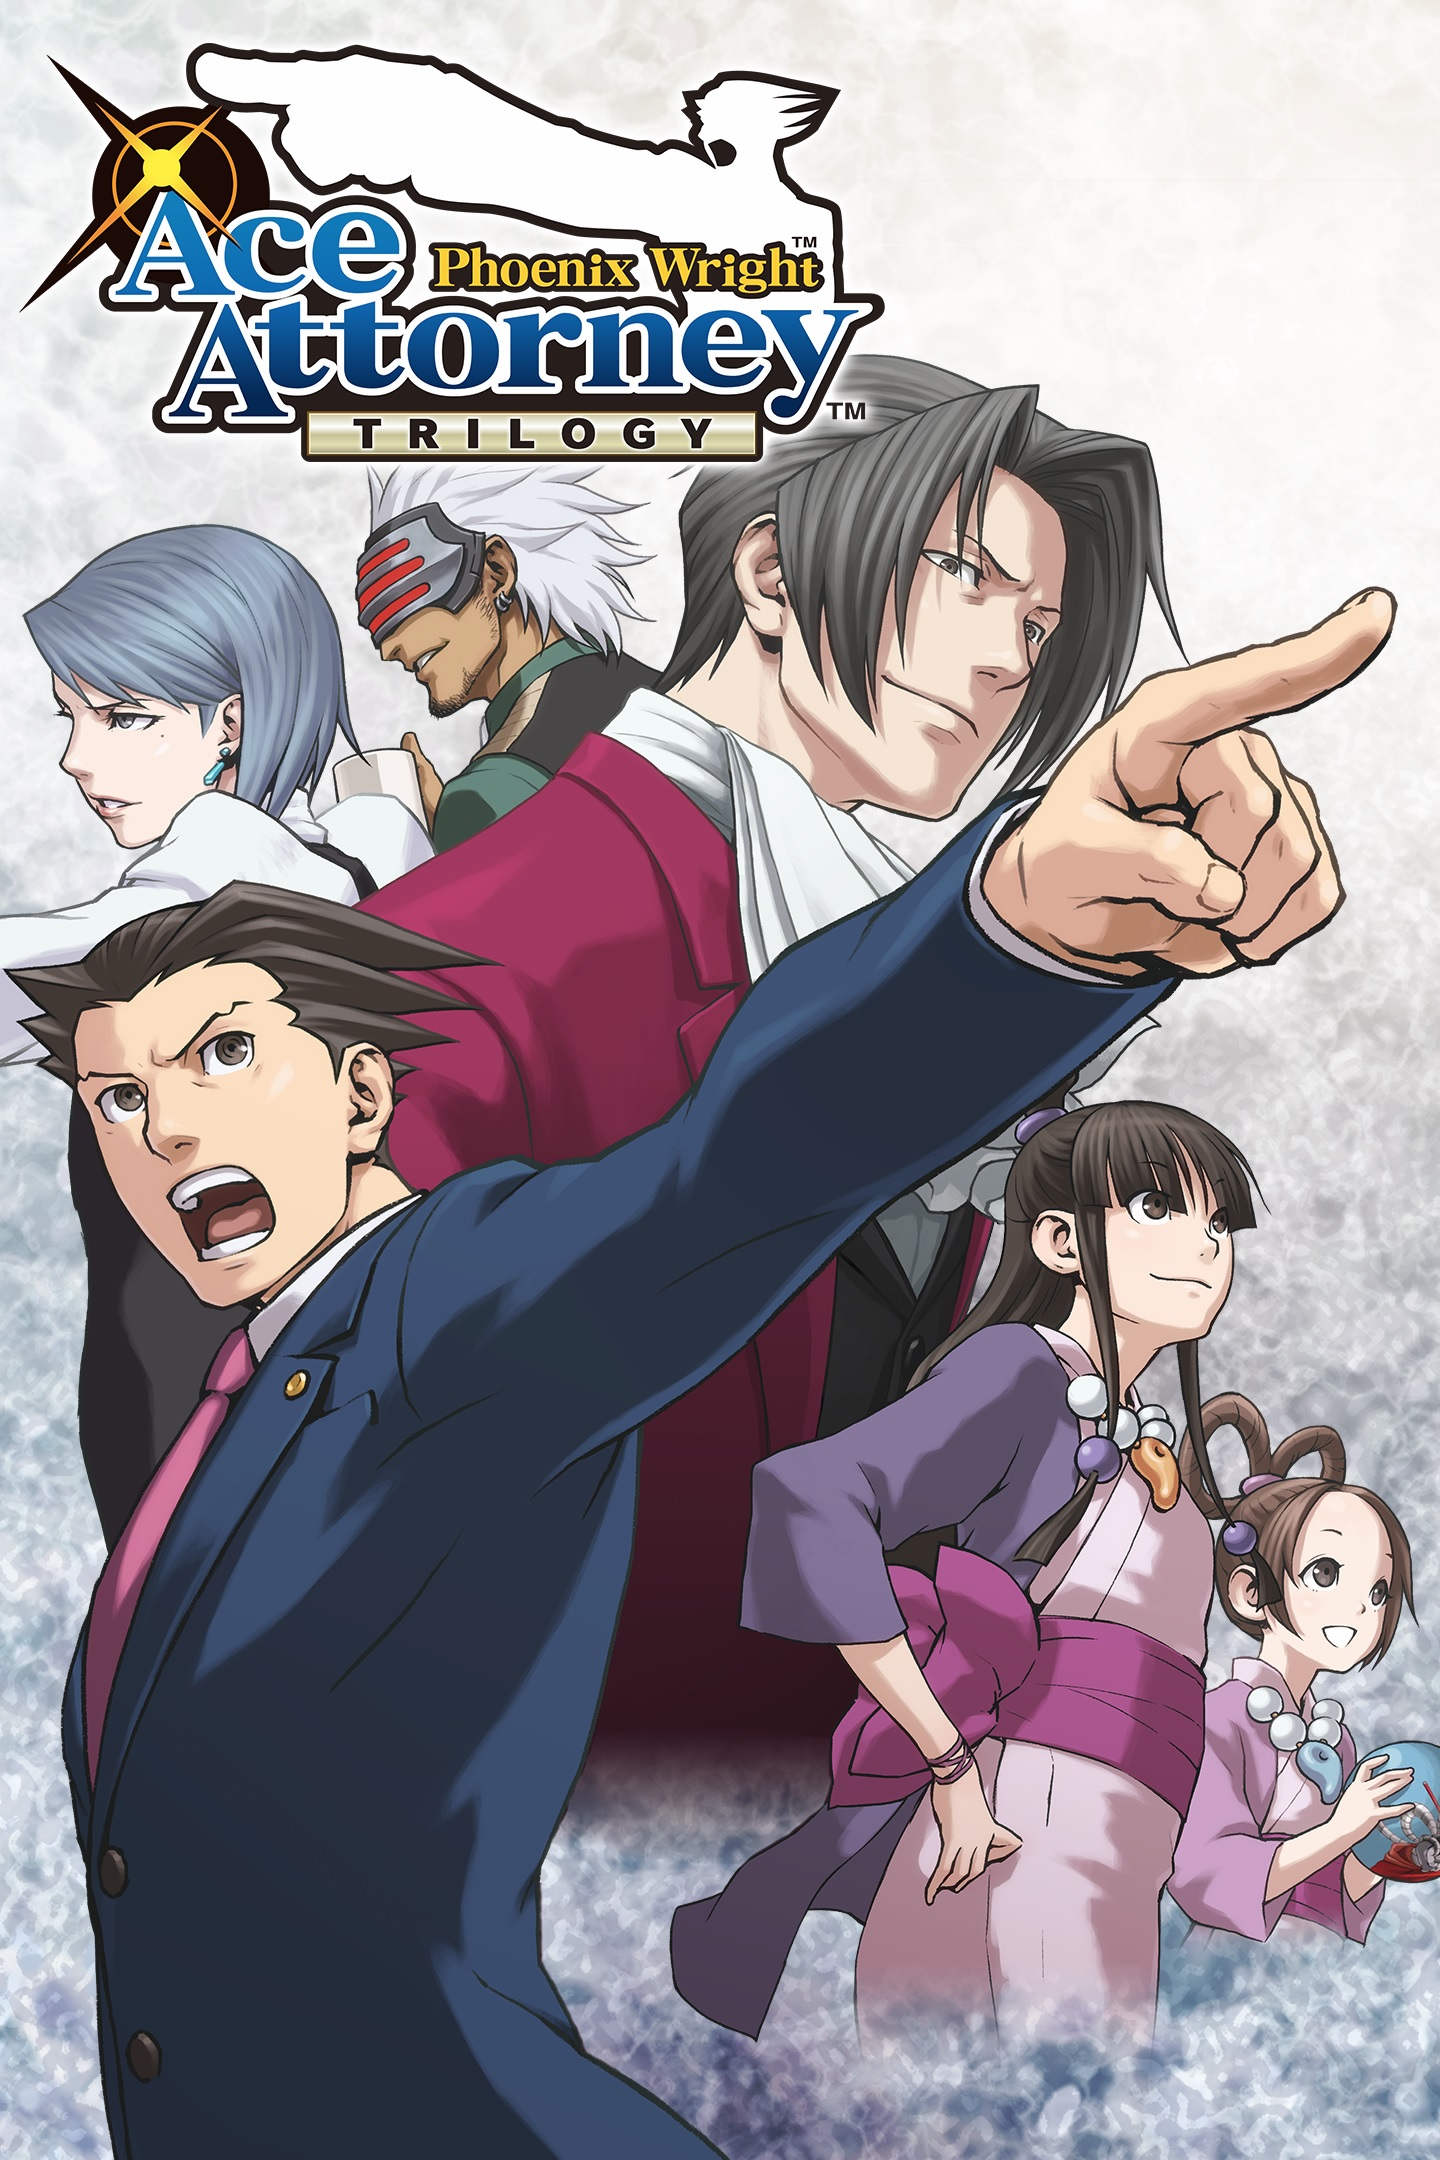 Phoenix Wright: Ace Attorney Trilogy Case Begins on 3DS